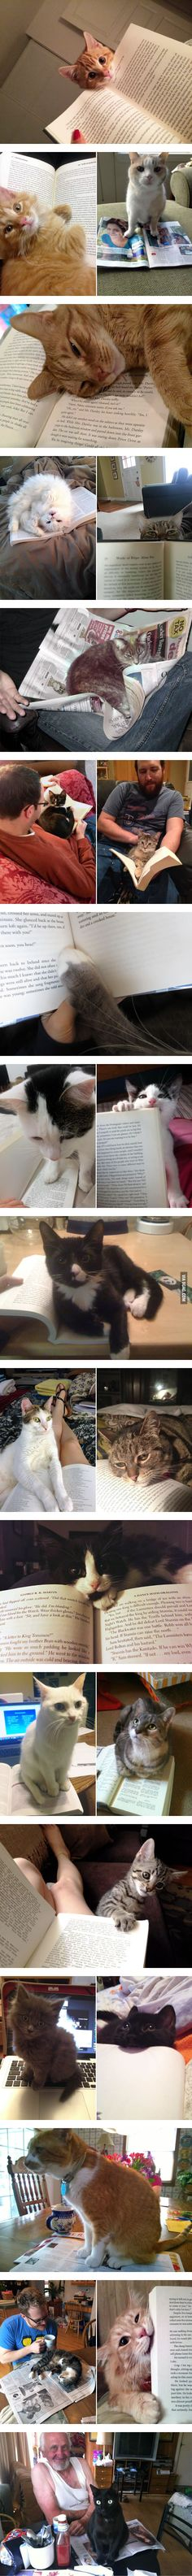 25 Cats That Have No Intention of Letting You Read